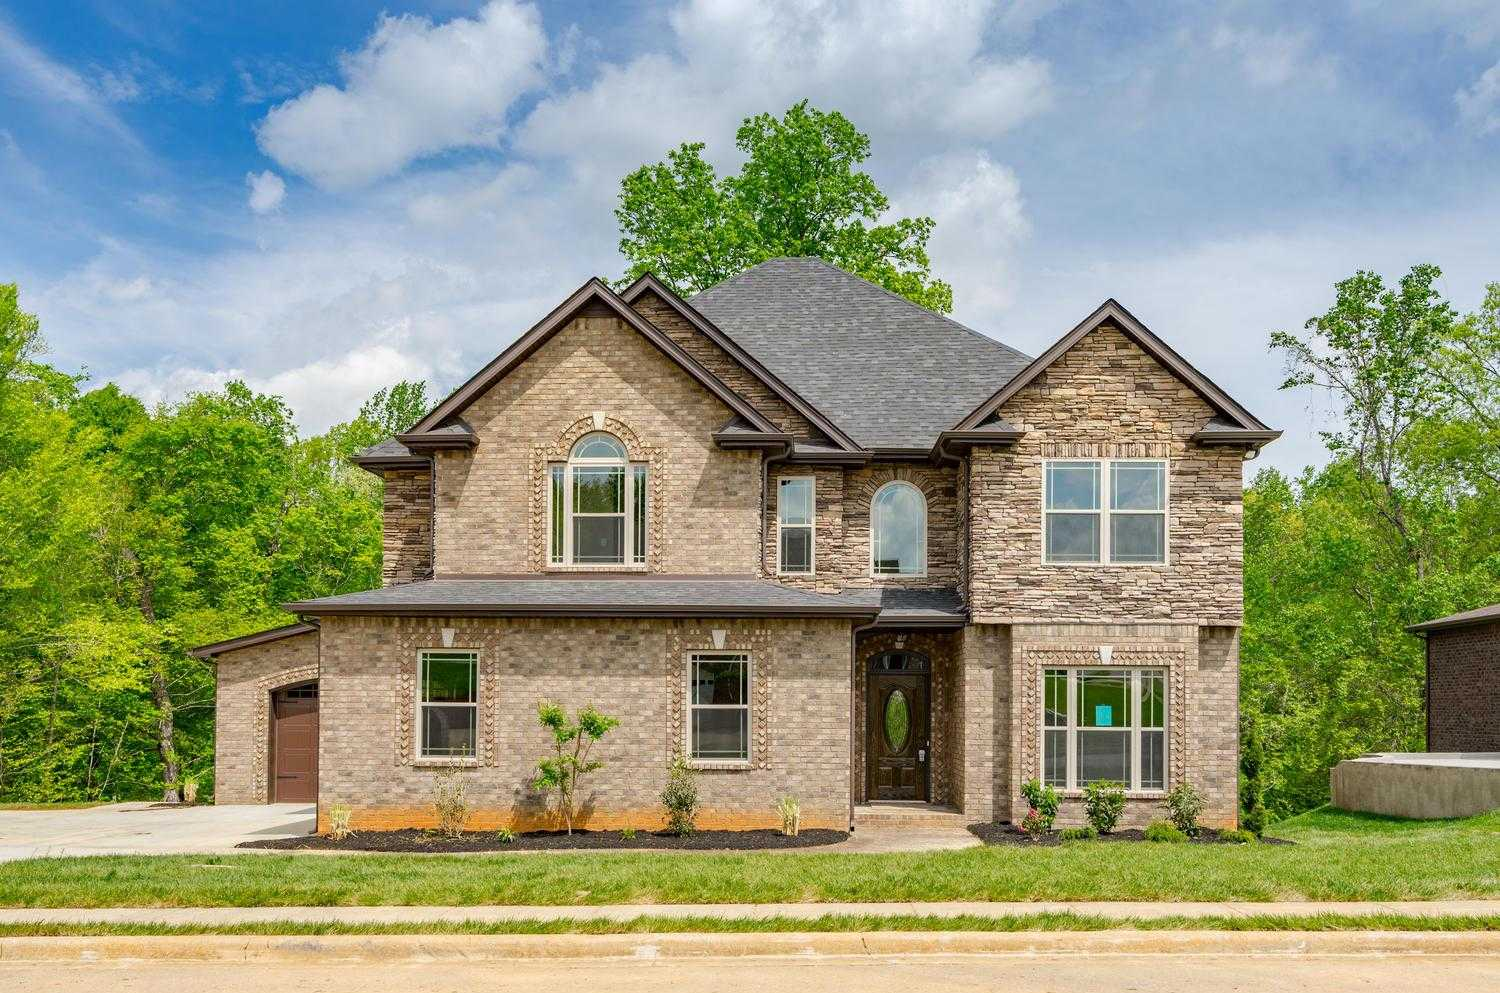 $409,900 - 5Br/5Ba -  for Sale in Reda Mills, Pleasant View